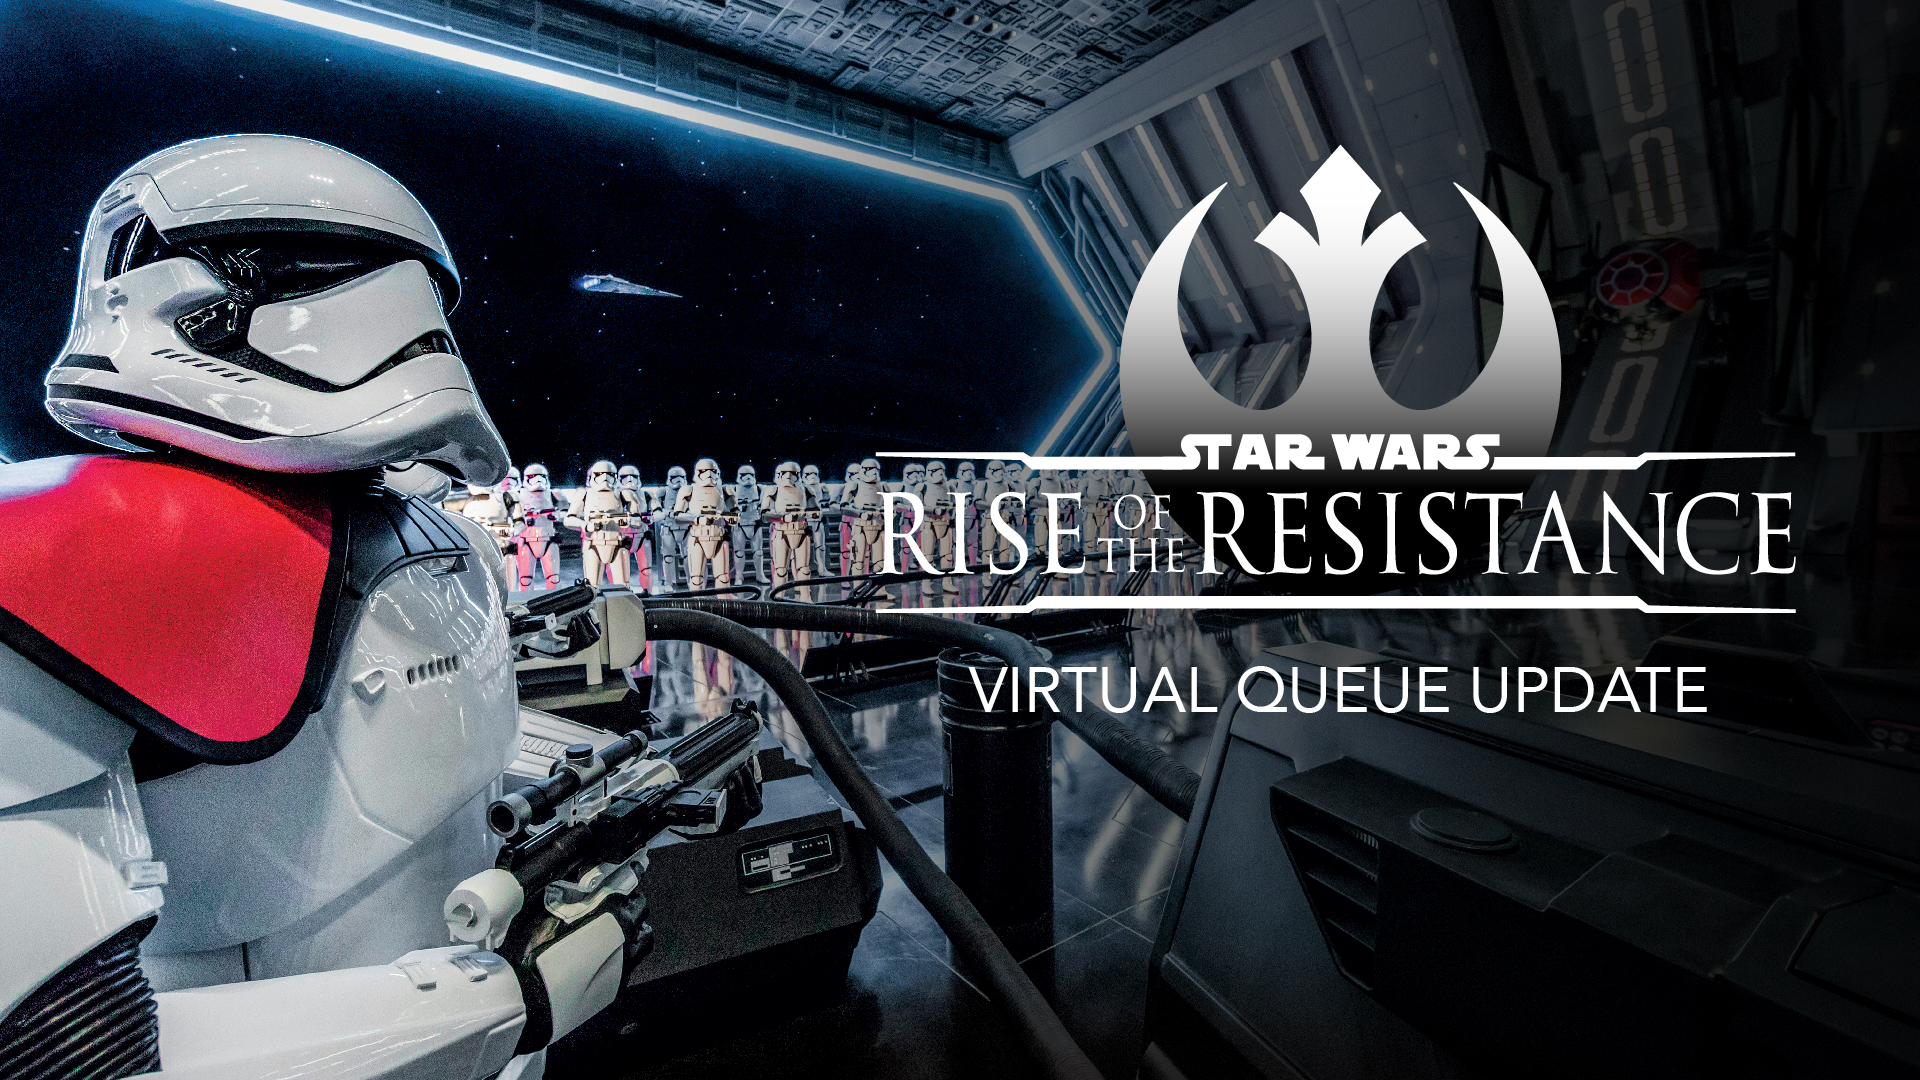 Disney's Hollywood Studios Pilots A New Approach to Virtual Queue for Star Wars: Rise of the Resistance